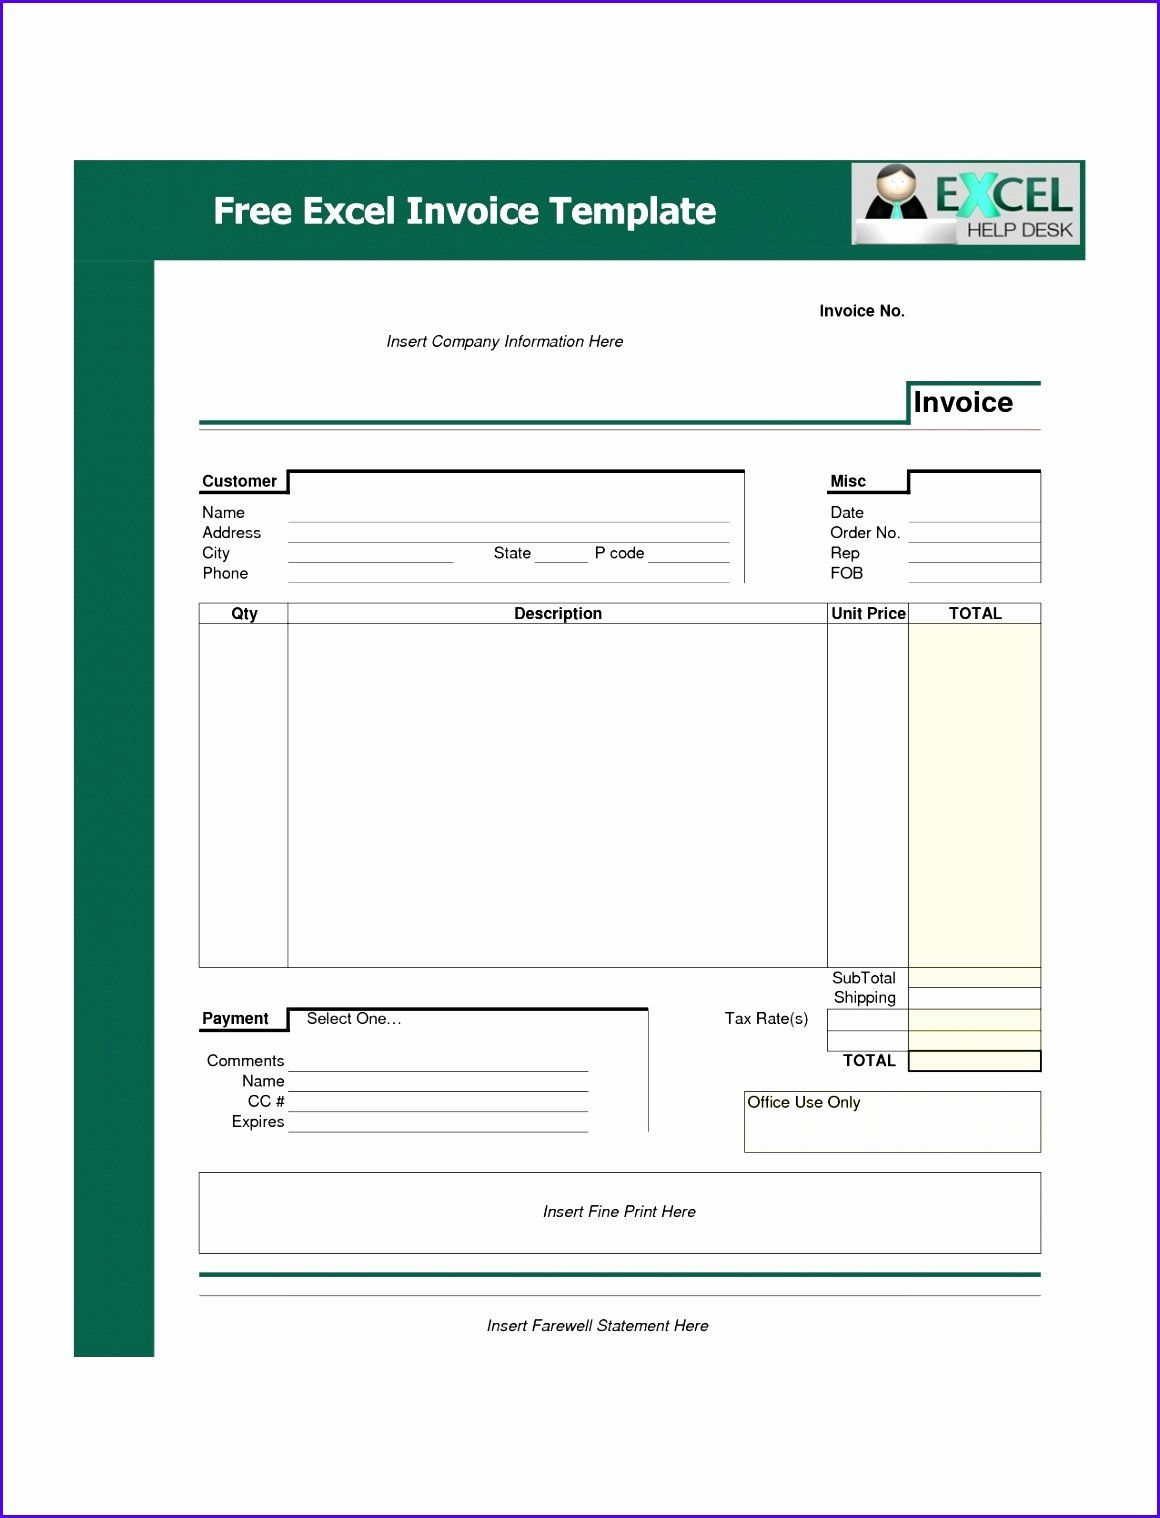 Ms Word Invoice Template Download Elegant 10 Microsoft Excel Invoice Template Free Download Invoice Template Invoice Format In Excel Invoice Template Word